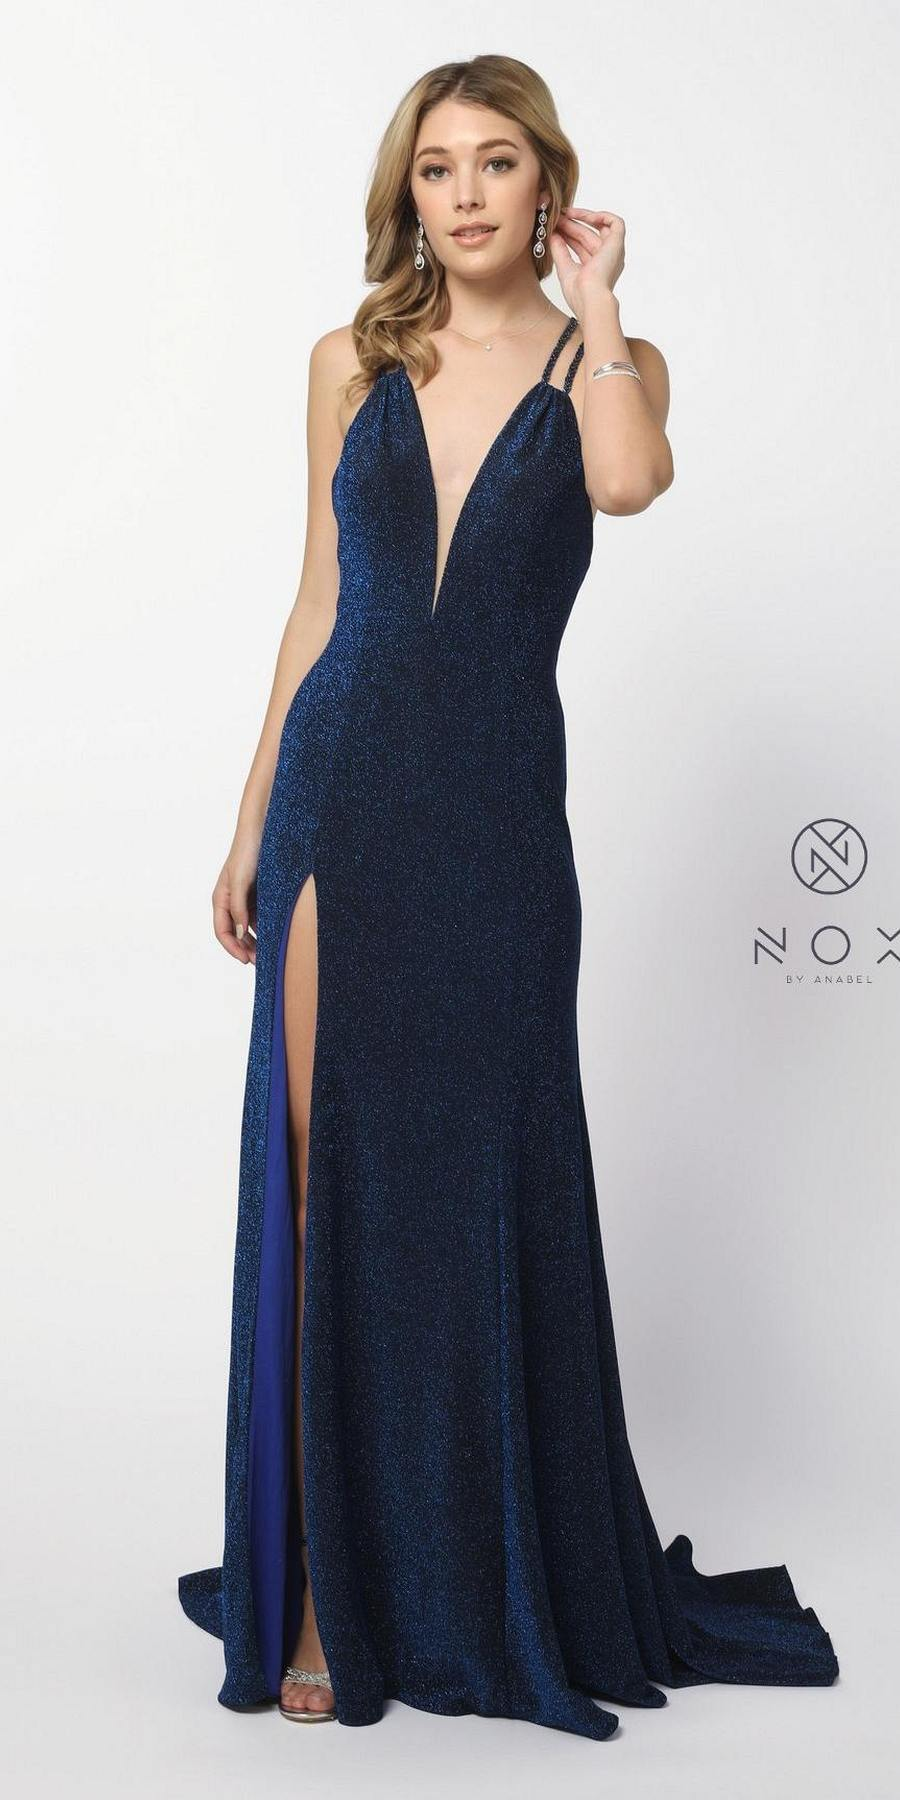 033441d5d Nox Anabel C234 Metallic Navy Blue Glitter Long Prom Dress V-Neck ...